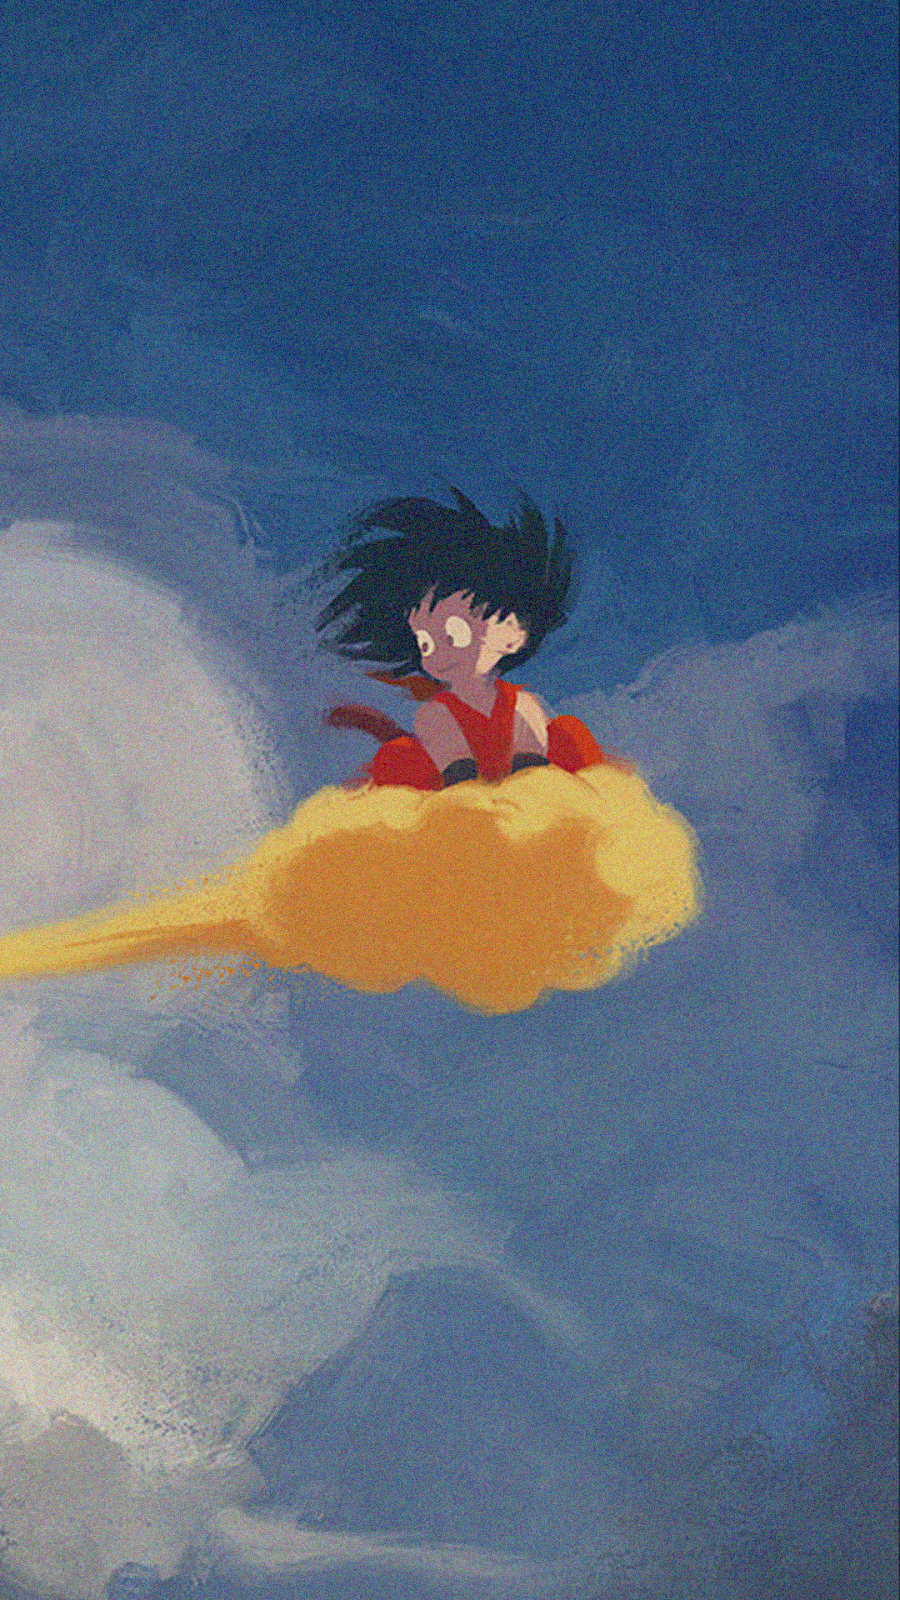 Dragon Ball Aesthetic Wallpapers Wallpaper Cave